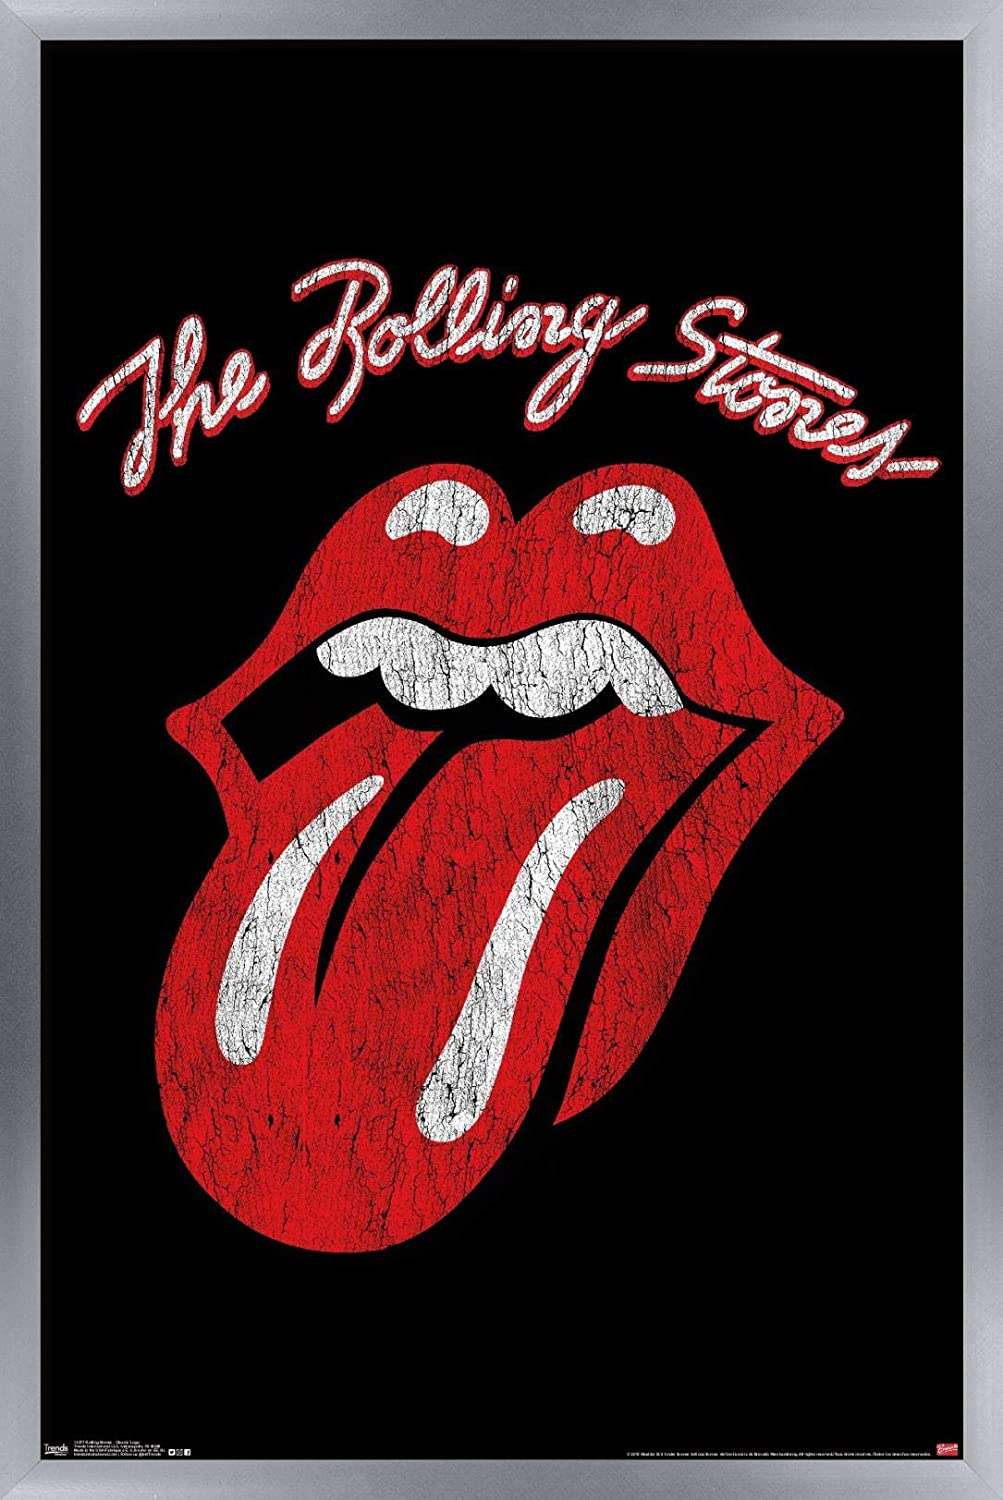 THE ROLLING STONES CANVAS PICTURE PRINT WALL ART HOME DECOR FREE FAST DELIVERY